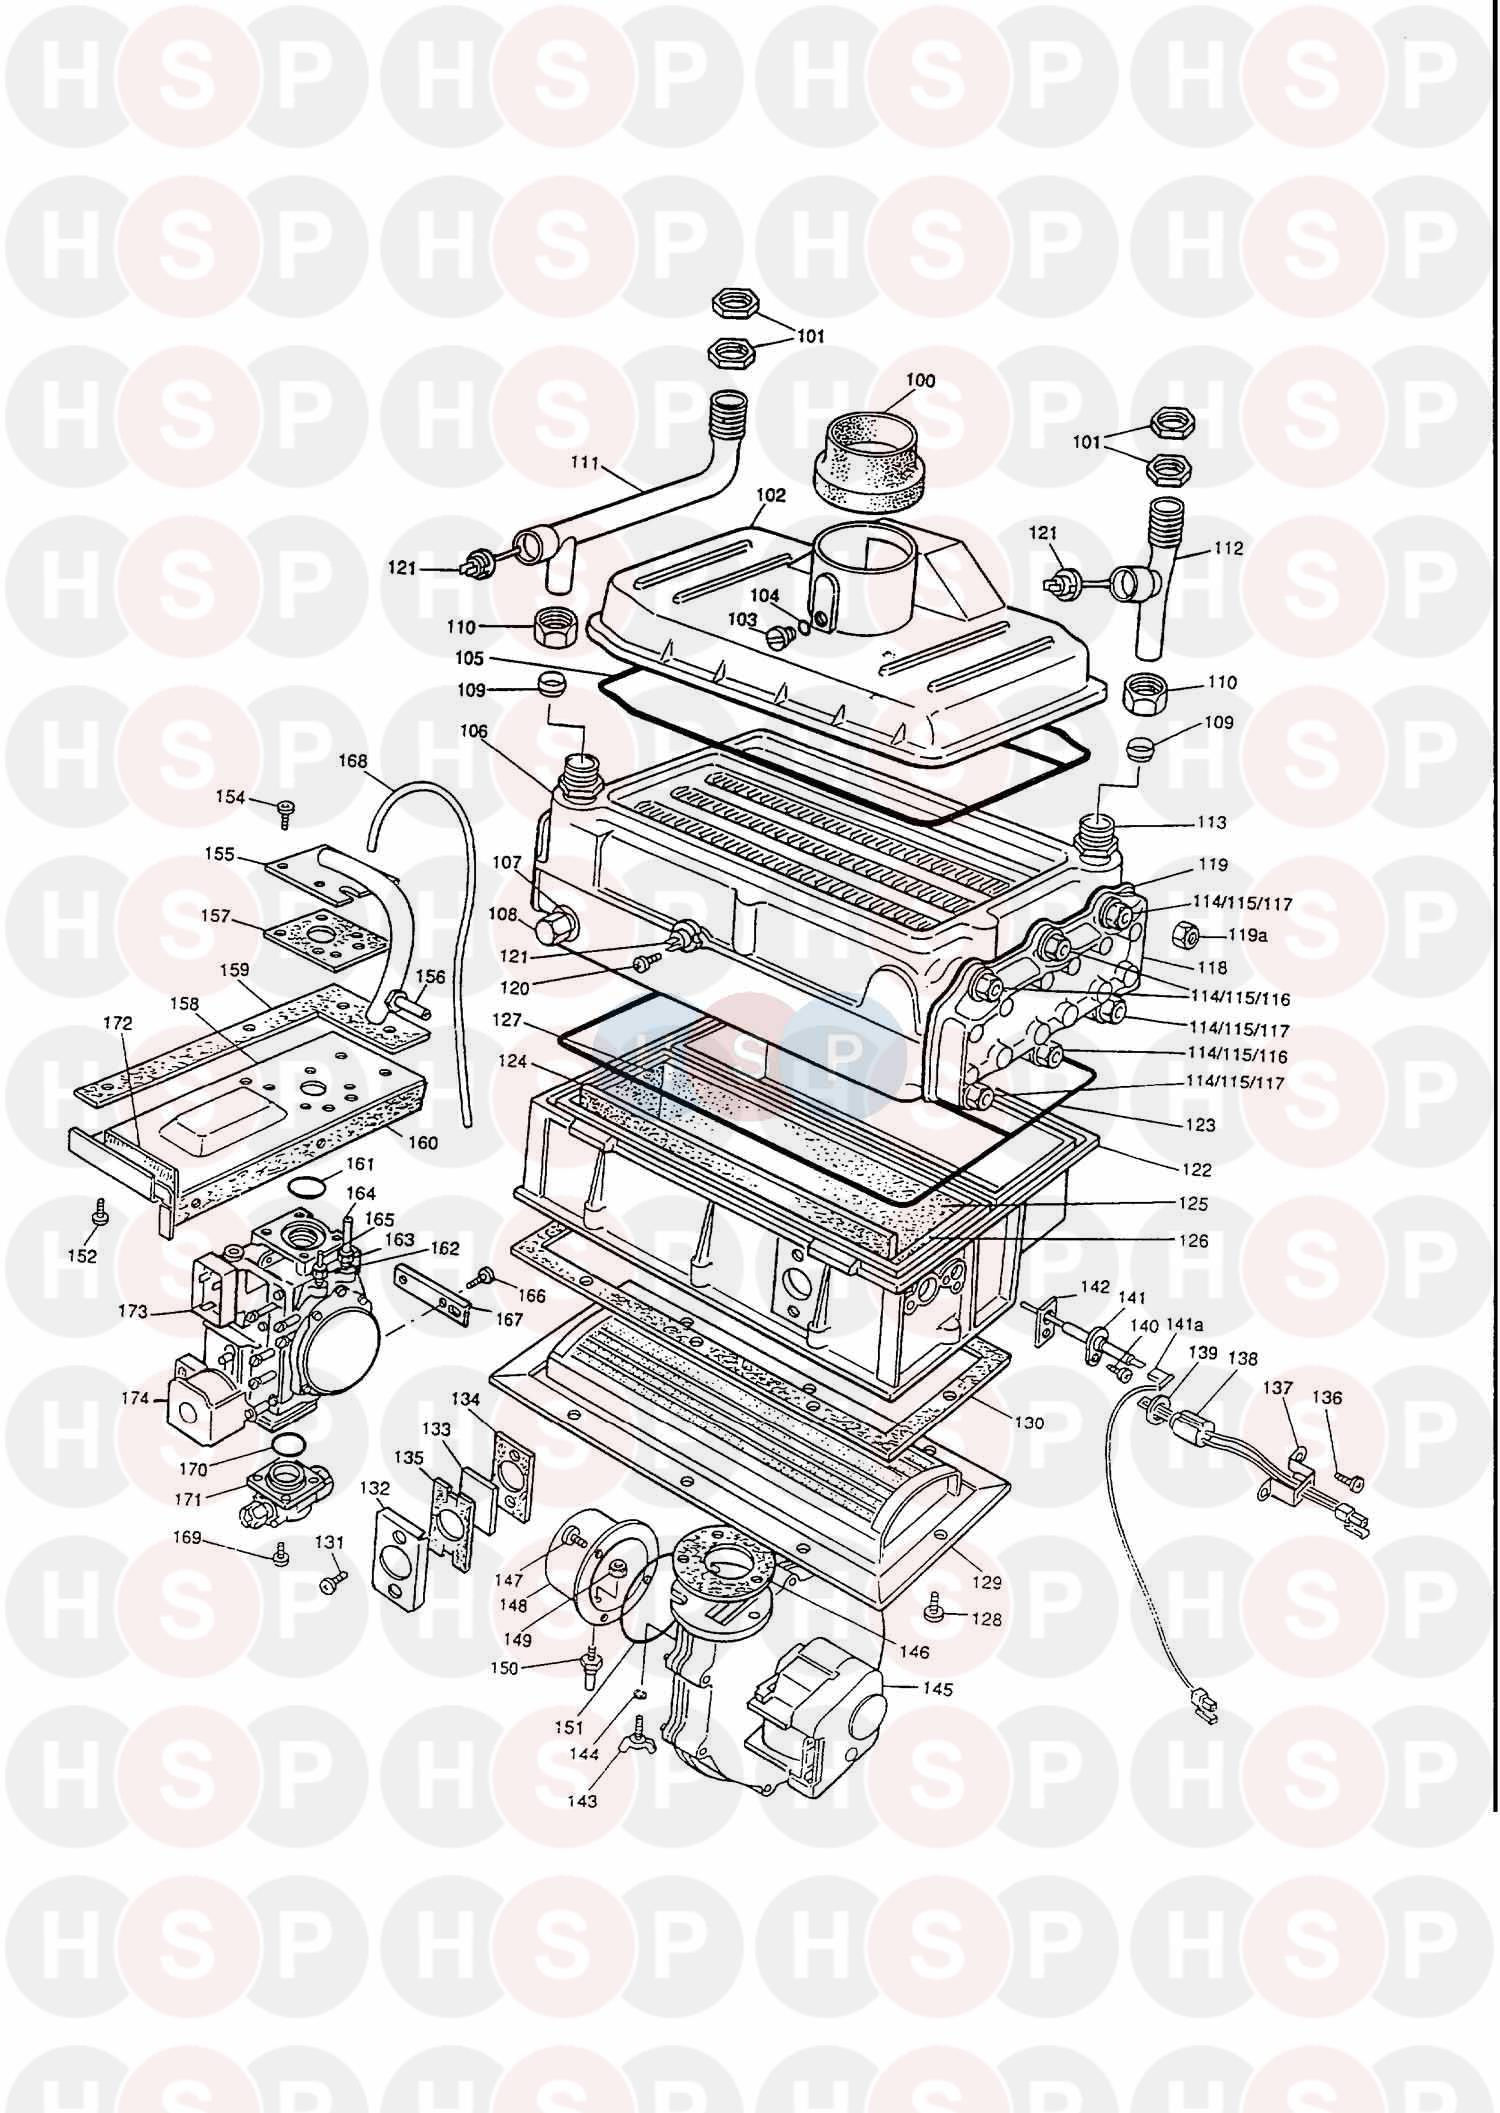 Laars Gas Furnace Electrical Wiring Diagram Diagrams Boilers Pontoon Boat Harness Control Fireplaces